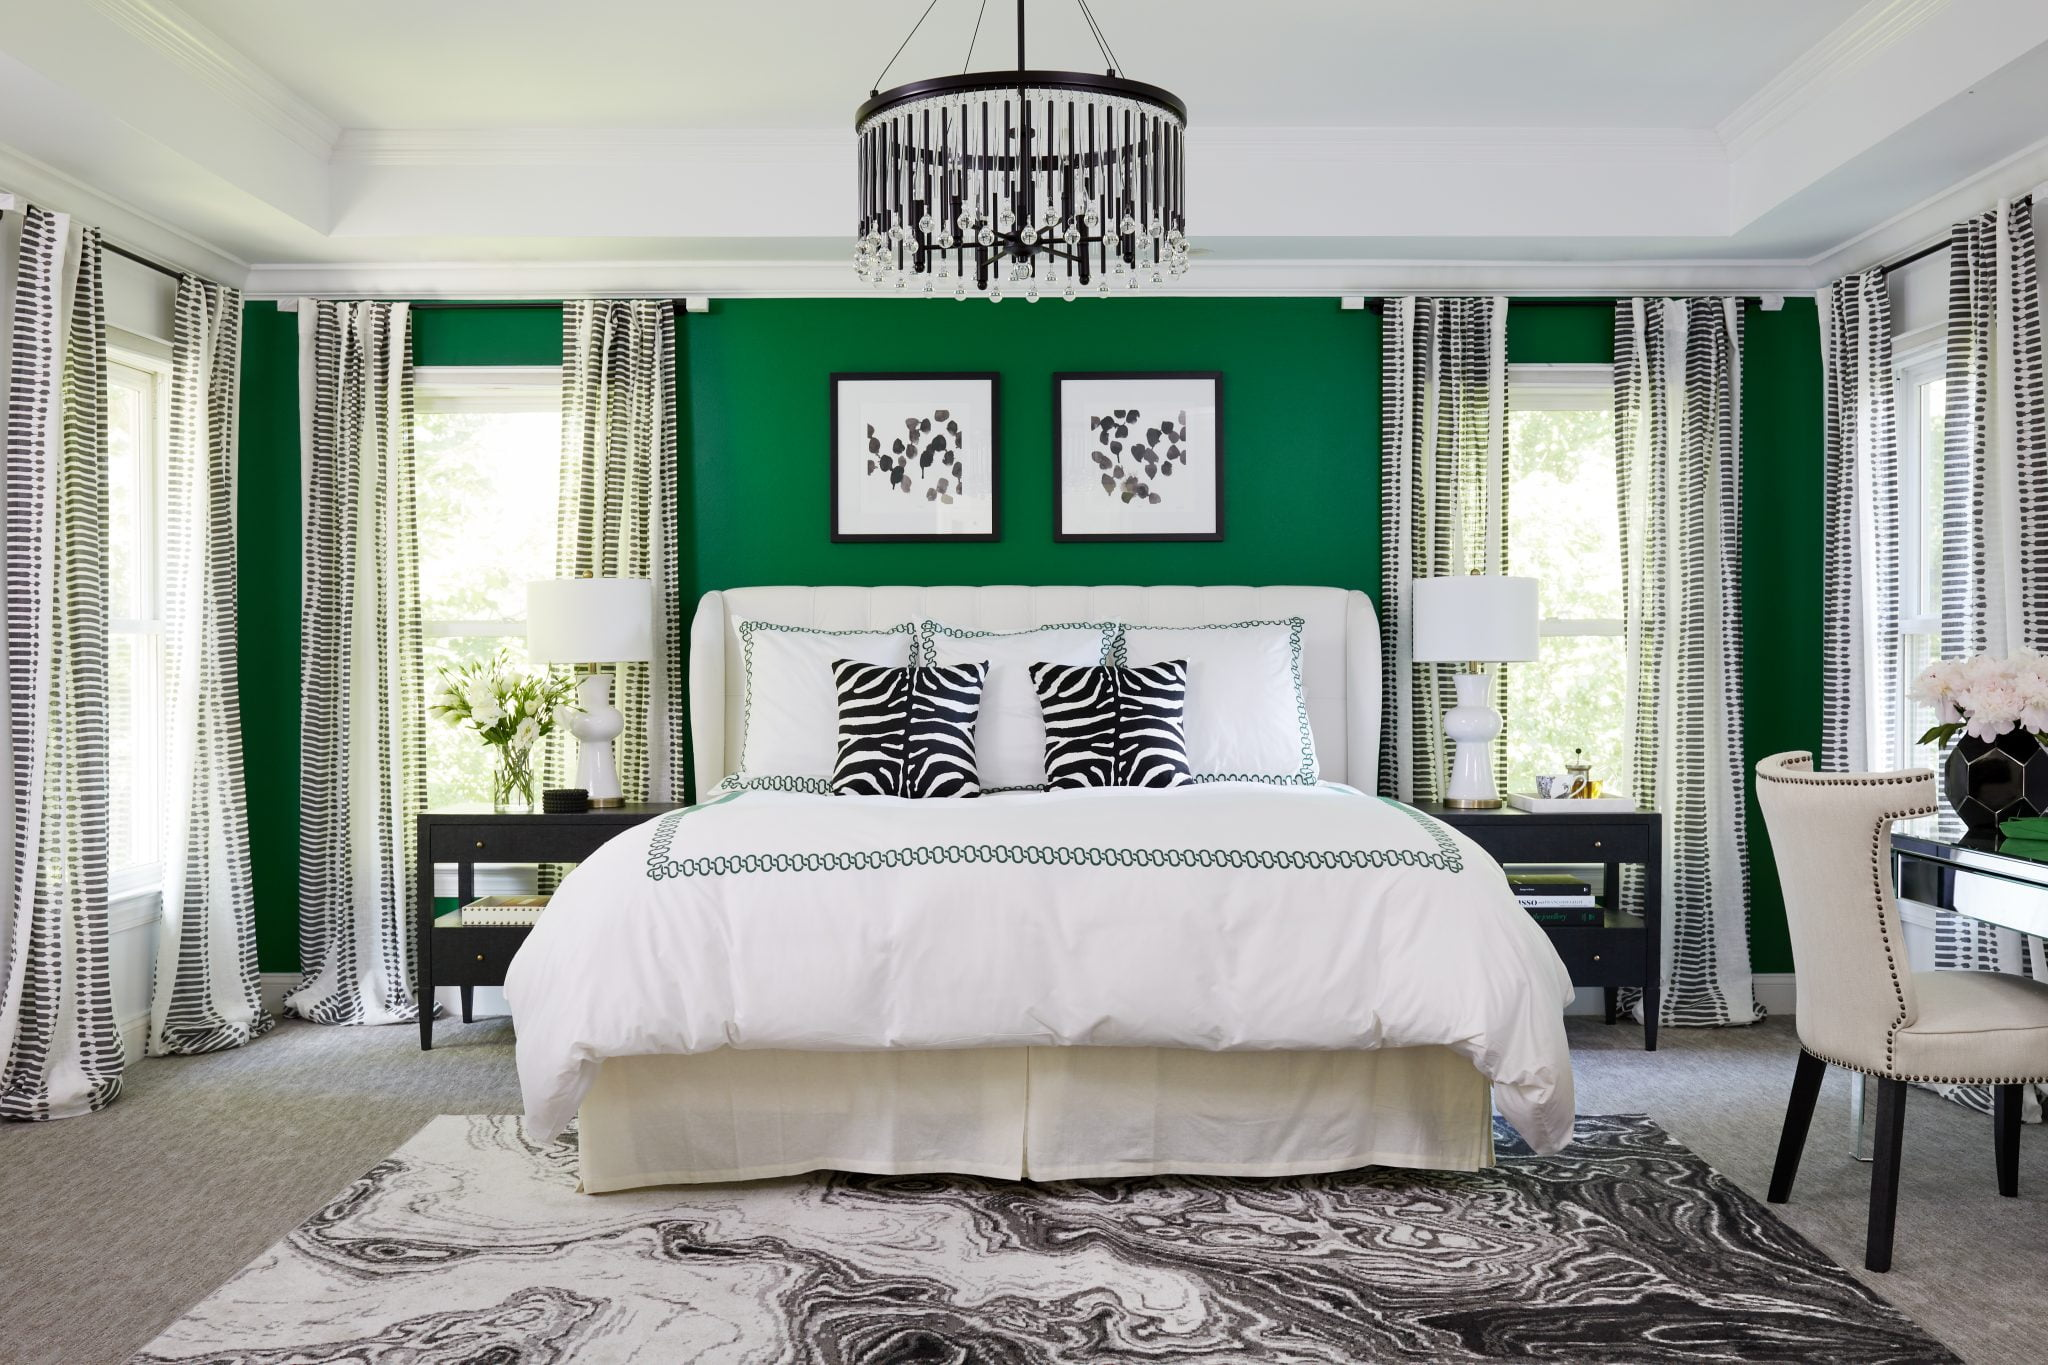 Serena & Lily bedding with emerald embroidery keeps the vibrant master bedroom balanced.